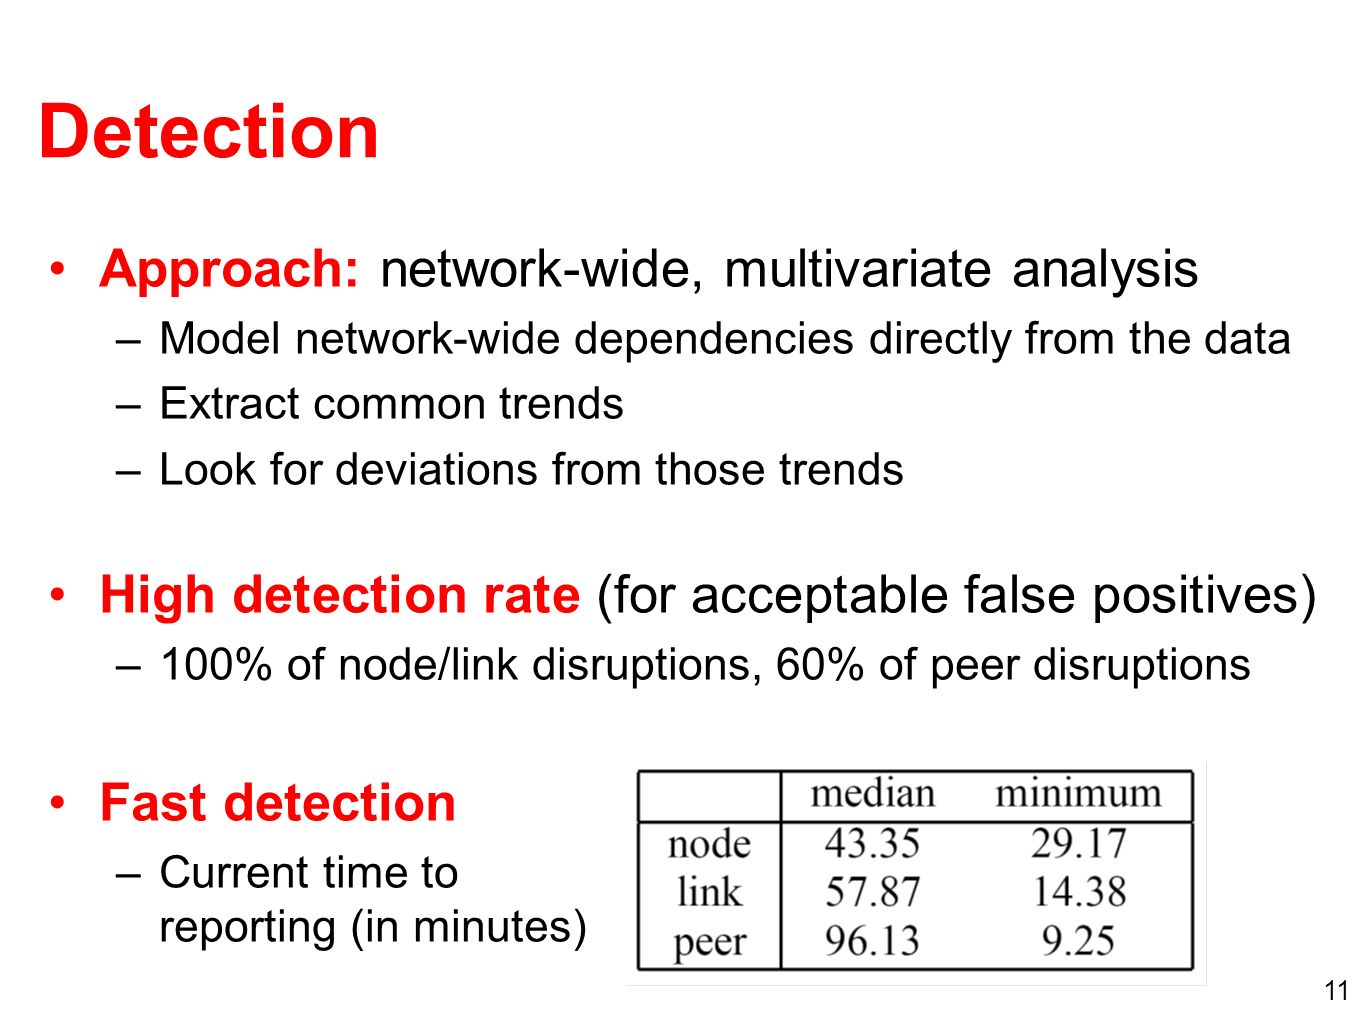 11 Approach: network-wide, multivariate analysis –Model network-wide dependencies directly from the data –Extract common trends –Look for deviations from those trends High detection rate (for acceptable false positives) –100% of node/link disruptions, 60% of peer disruptions Fast detection –Current time to reporting (in minutes) Detection